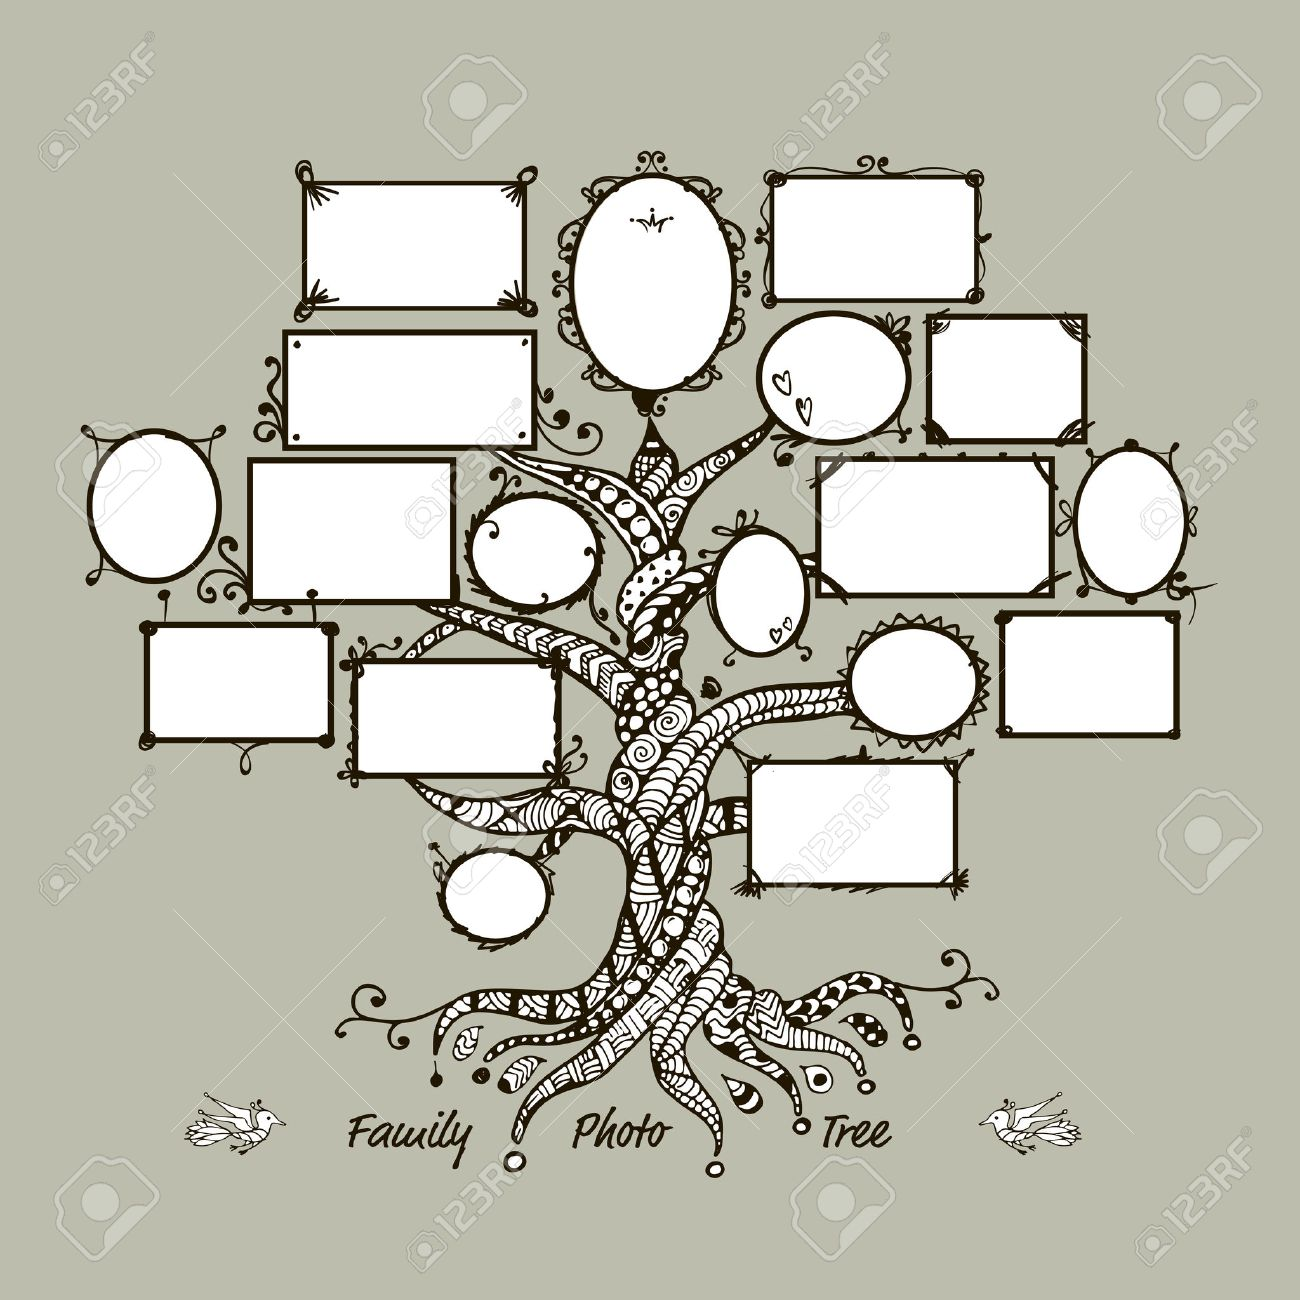 Family Tree Template With Picture Frames. Insert Your Photos ...